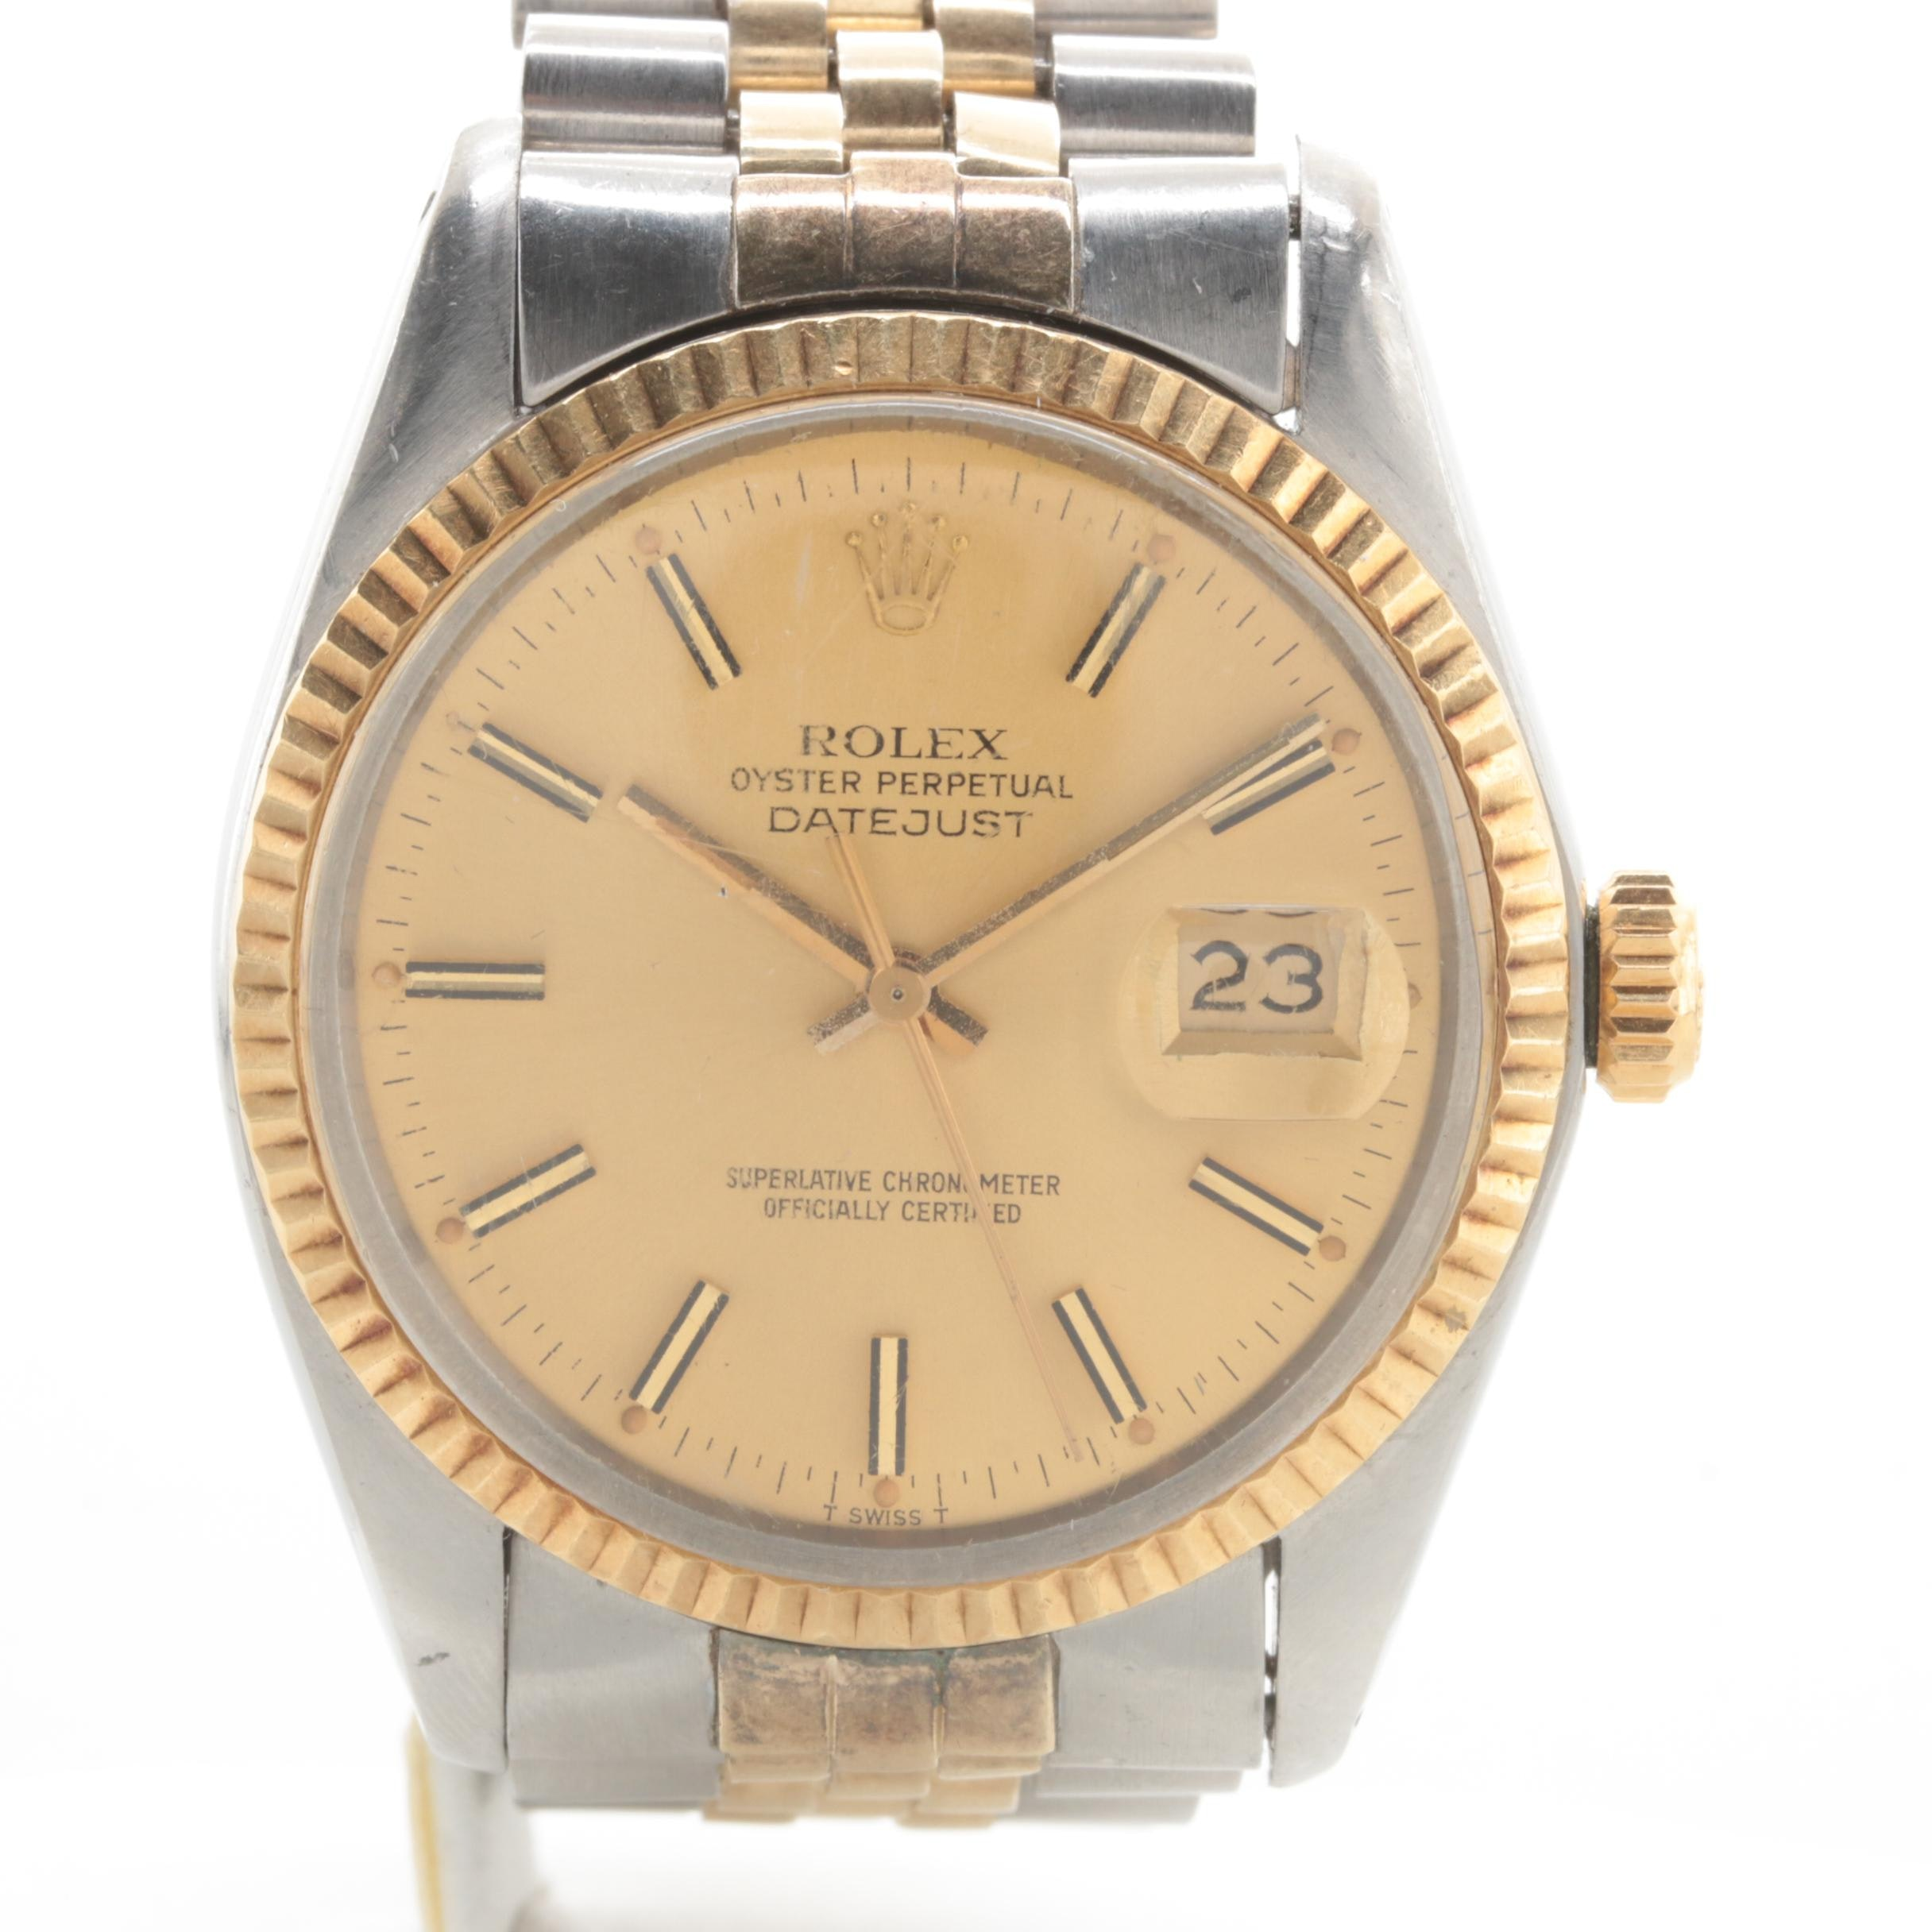 Circa 1979 Rolex Datejust Stainless Steel and 14K Yellow Gold Wristwatch